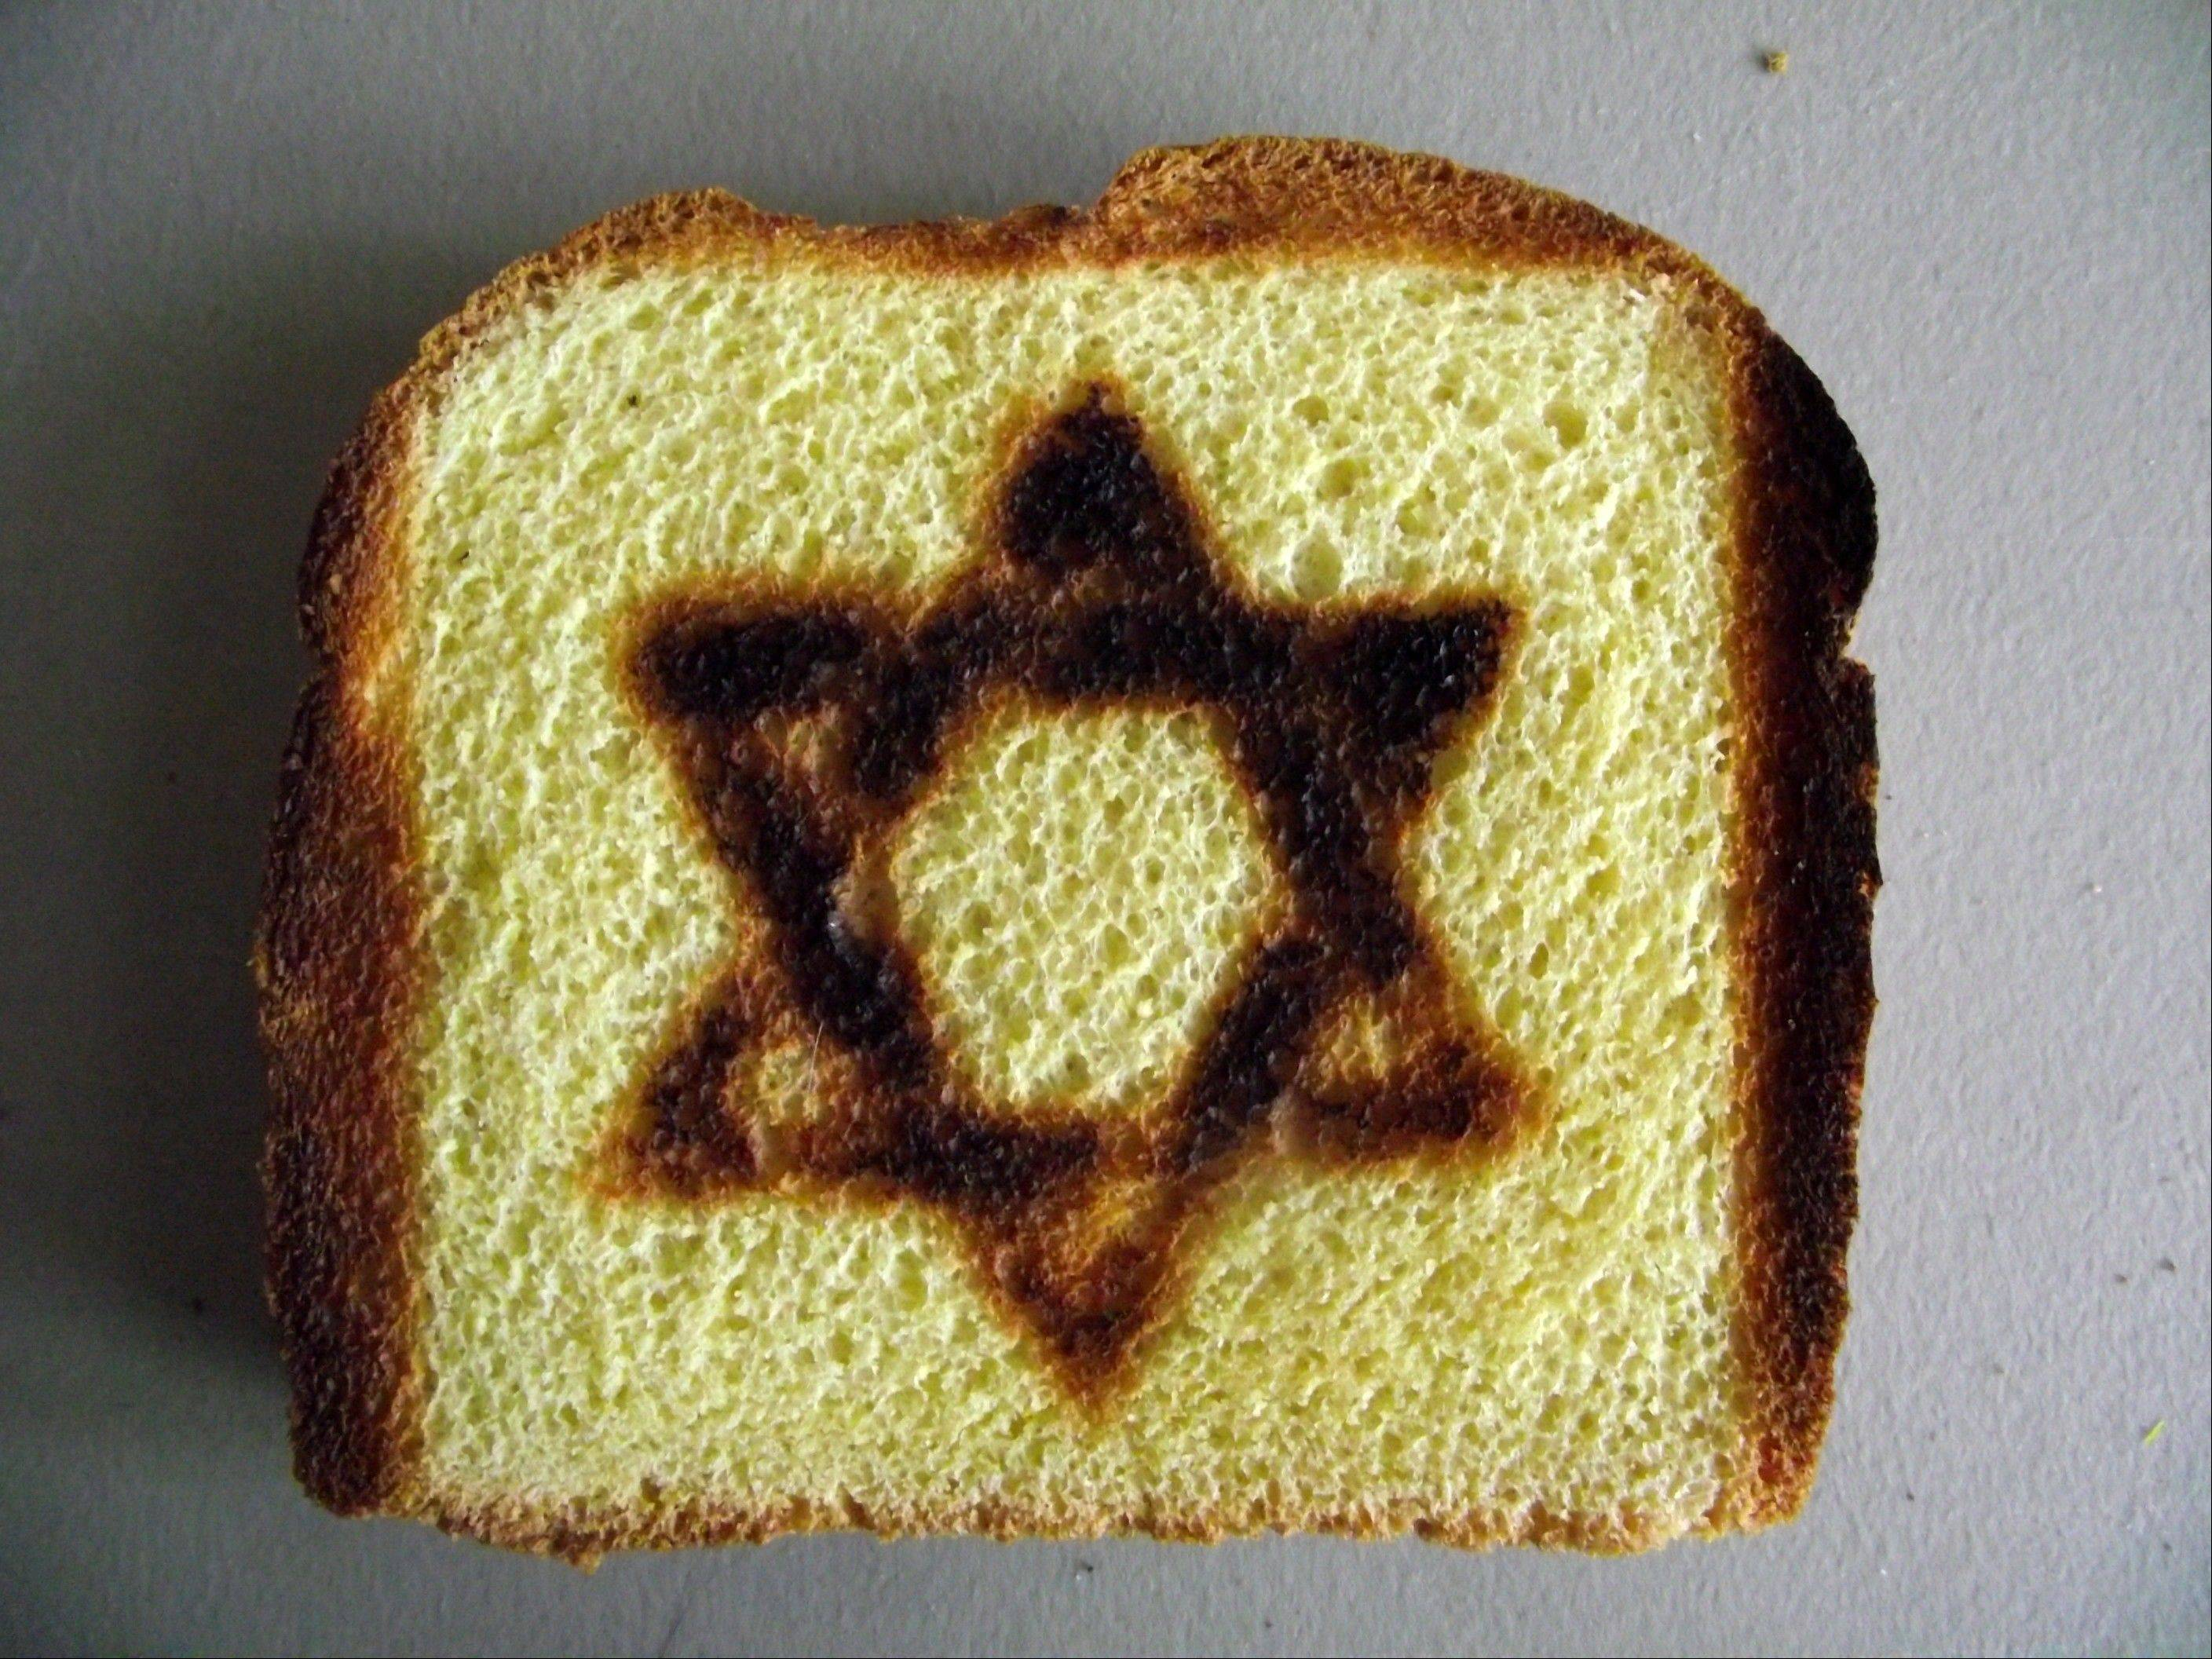 Toast with a Star of David symbol burned into it is made by a specialty Star of David Toaster.